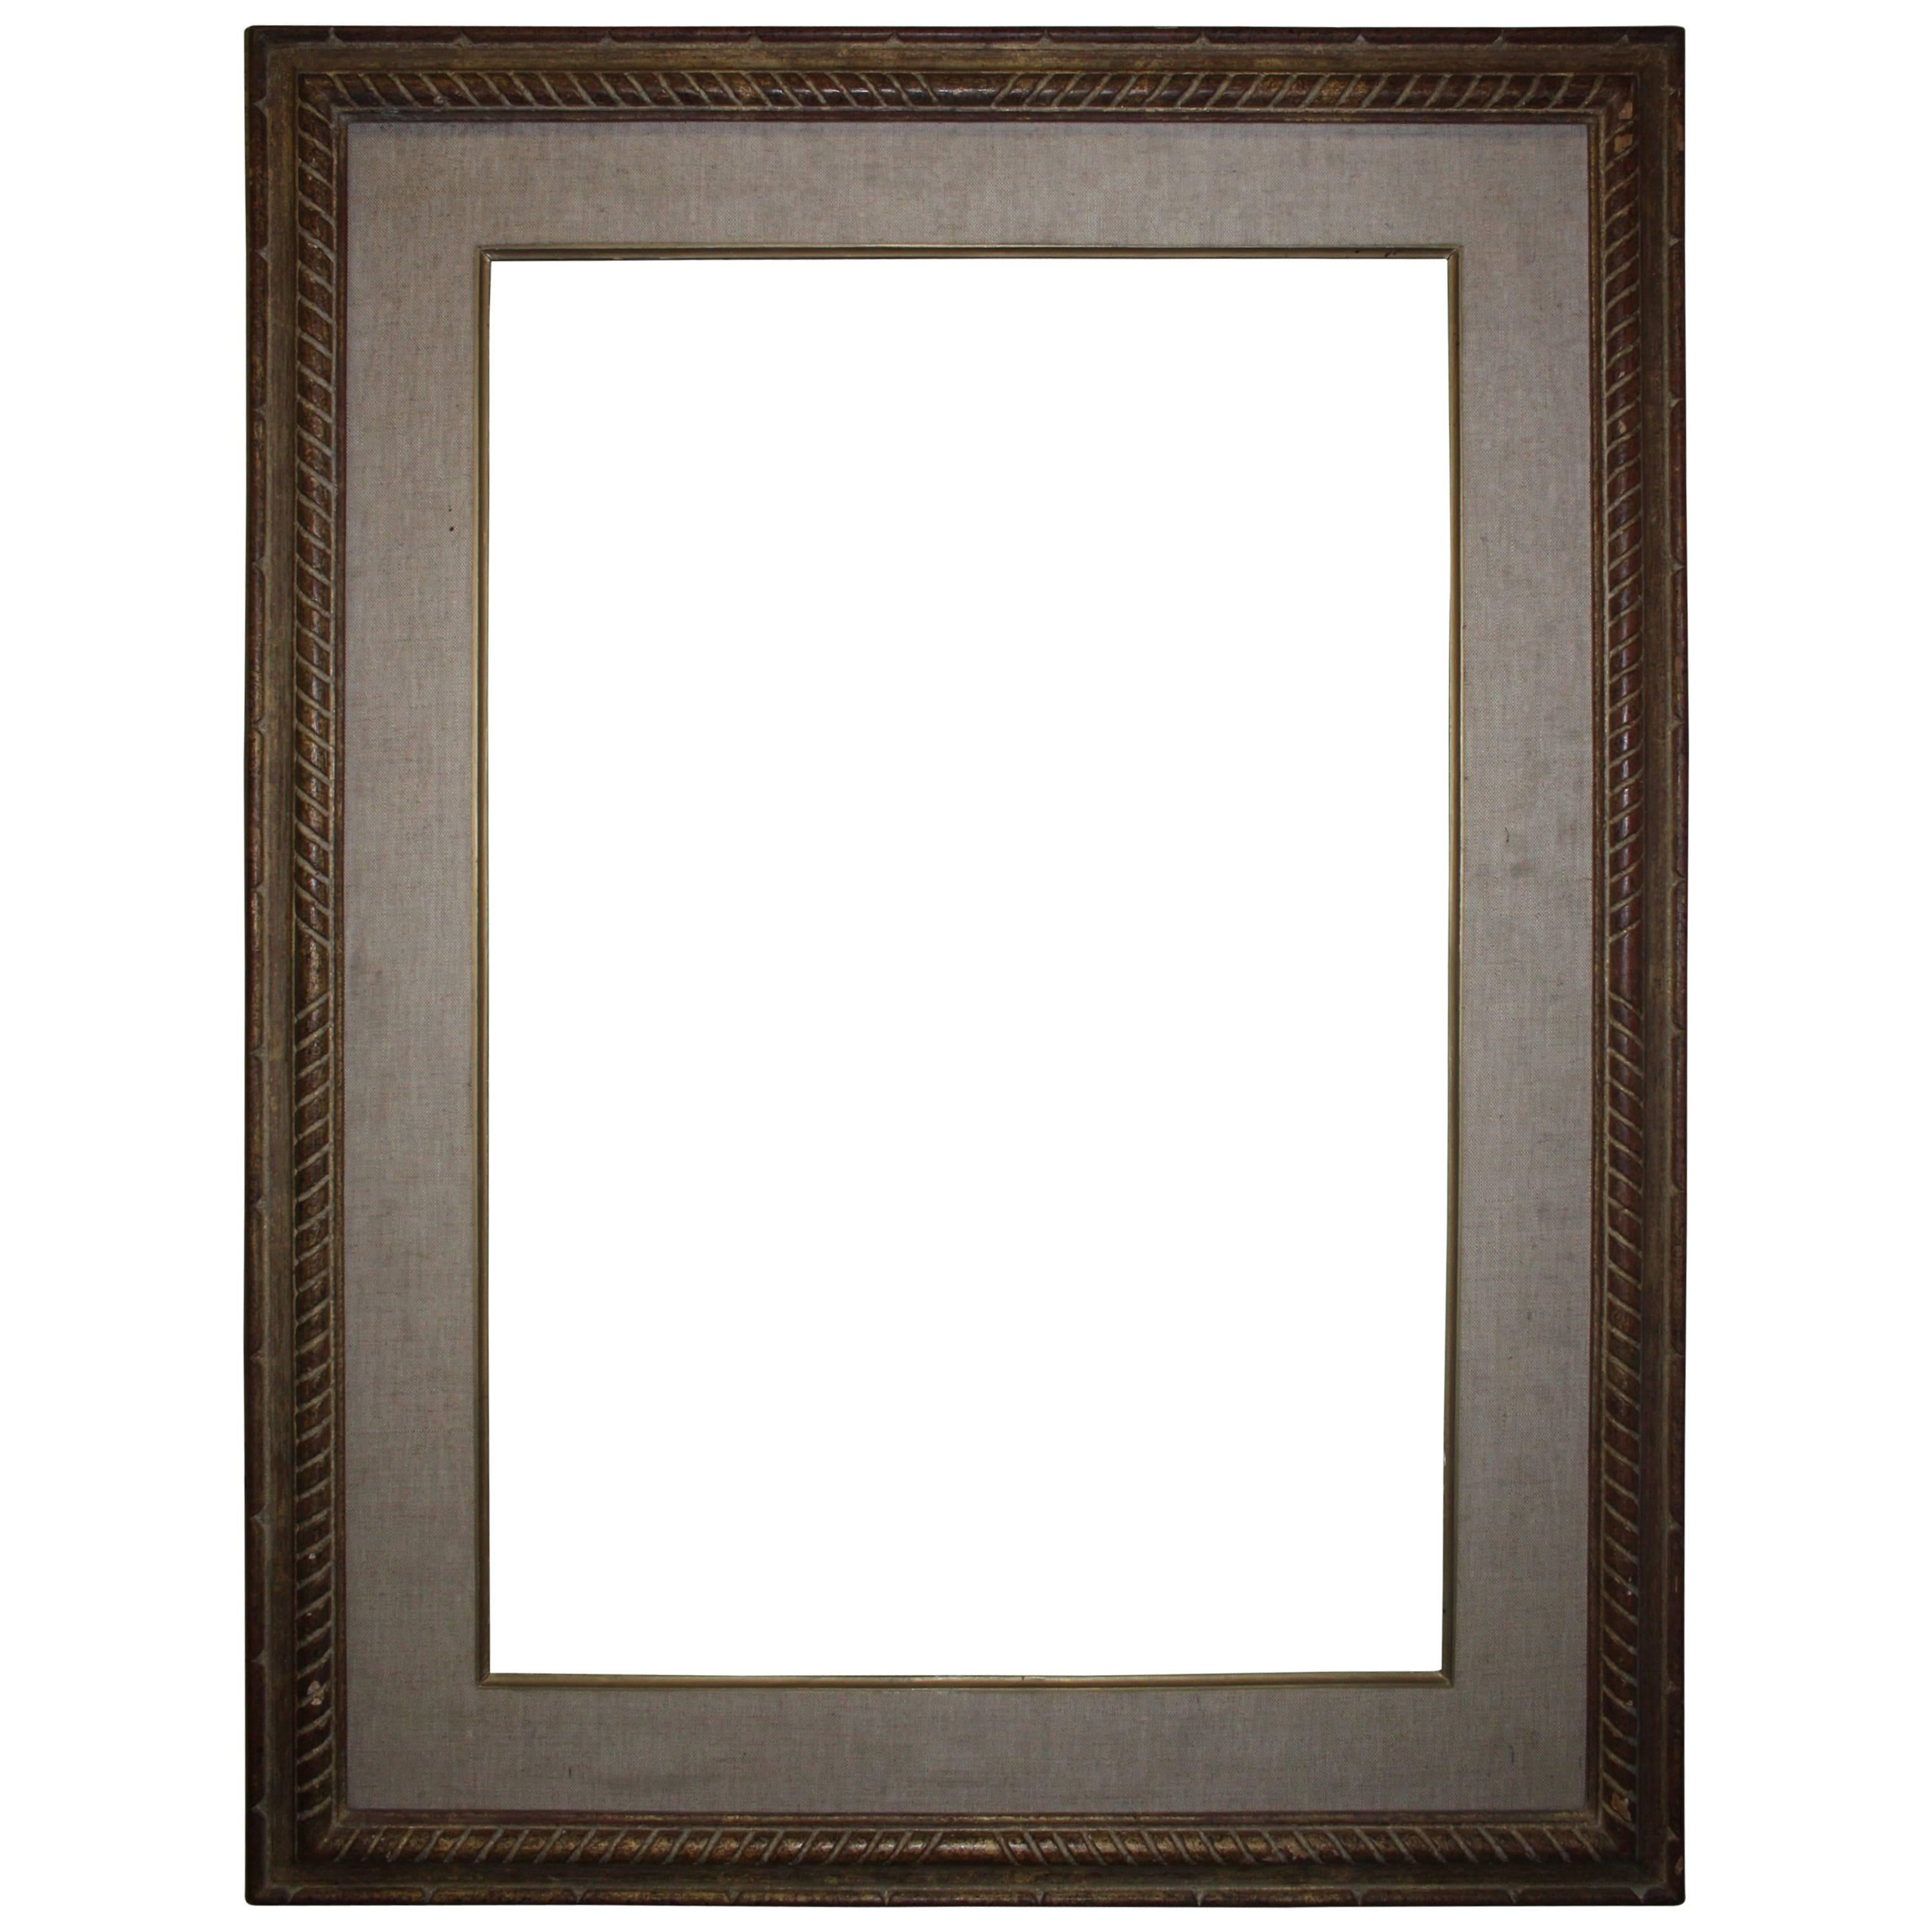 Early 20th Century French Frame